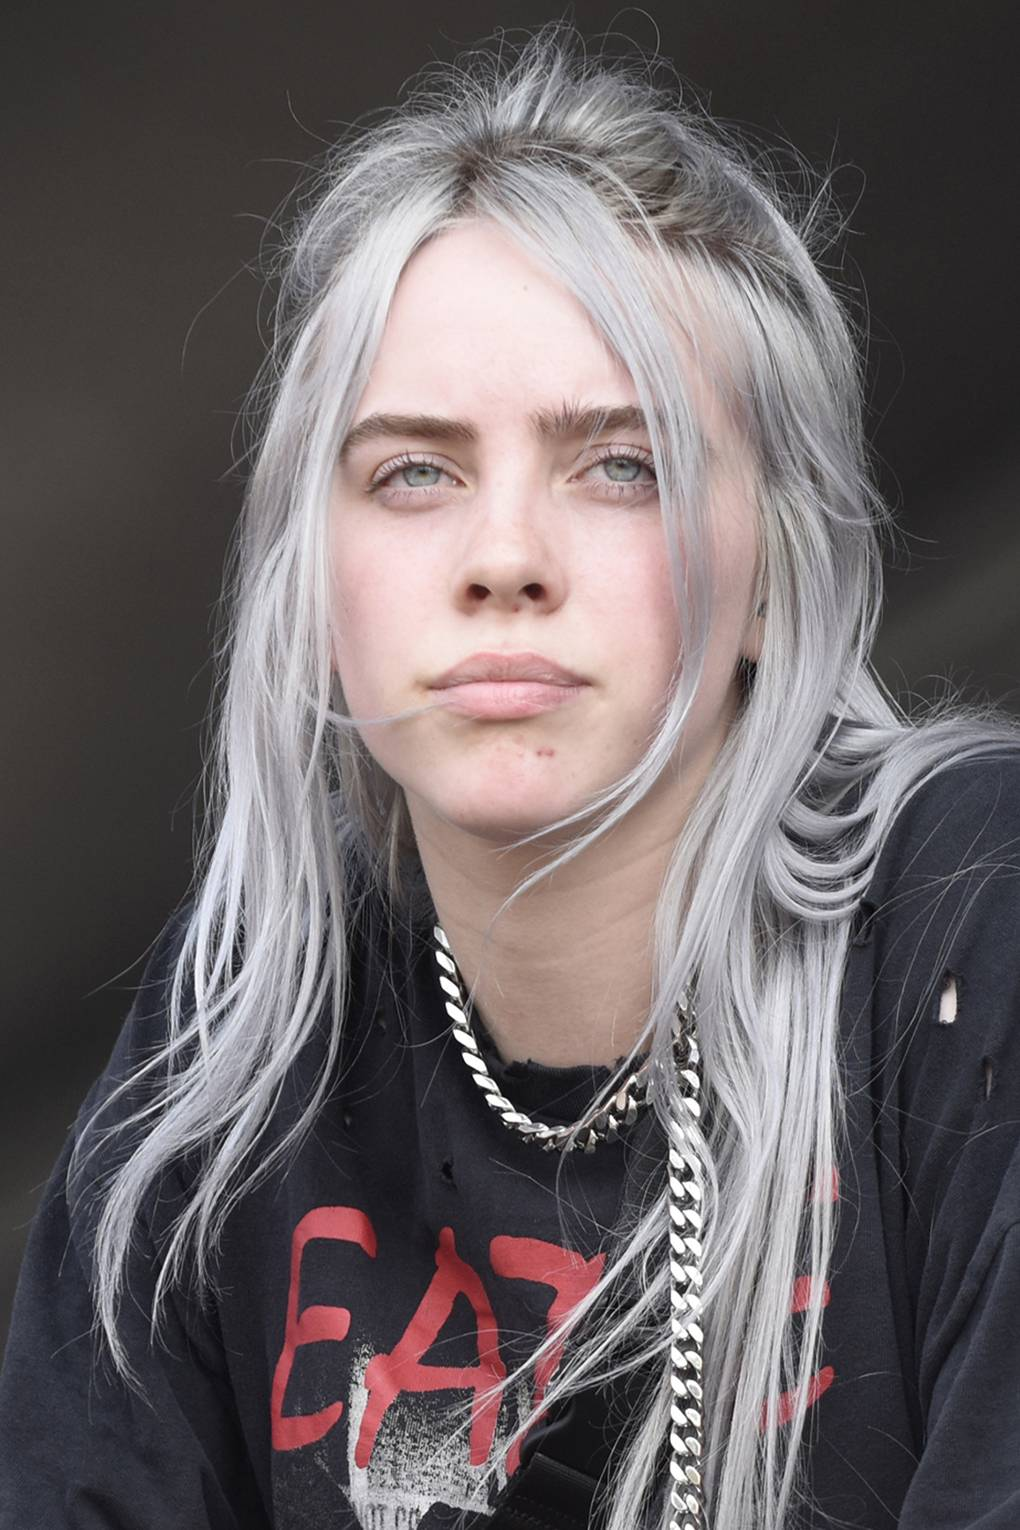 Grammy Awards 2020 Billie Eilish S Gucci Nails May Be Her Best